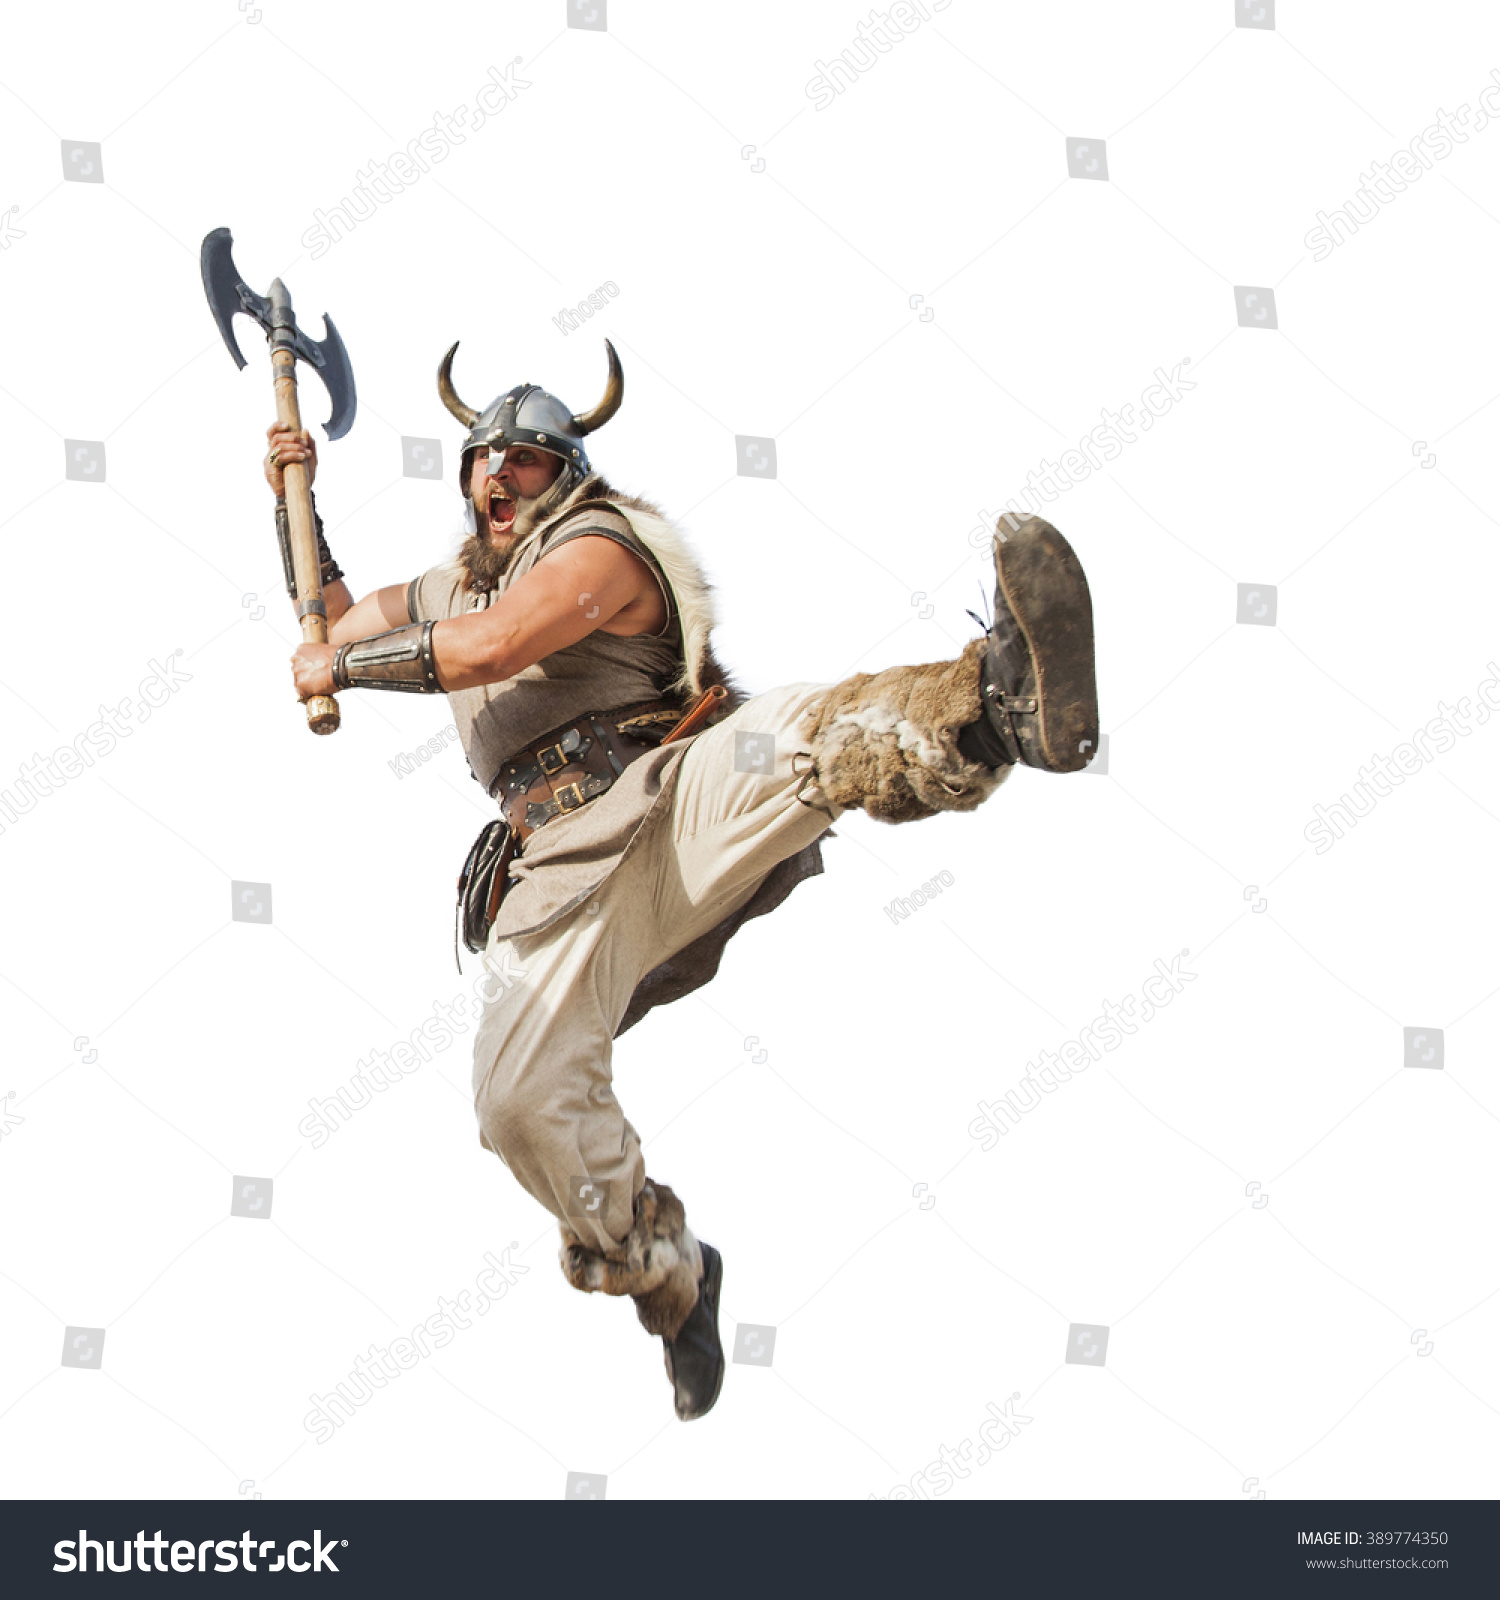 crazy strong viking with traditional costume attacking studio shot isolated on white background looking at camera with angry eyes